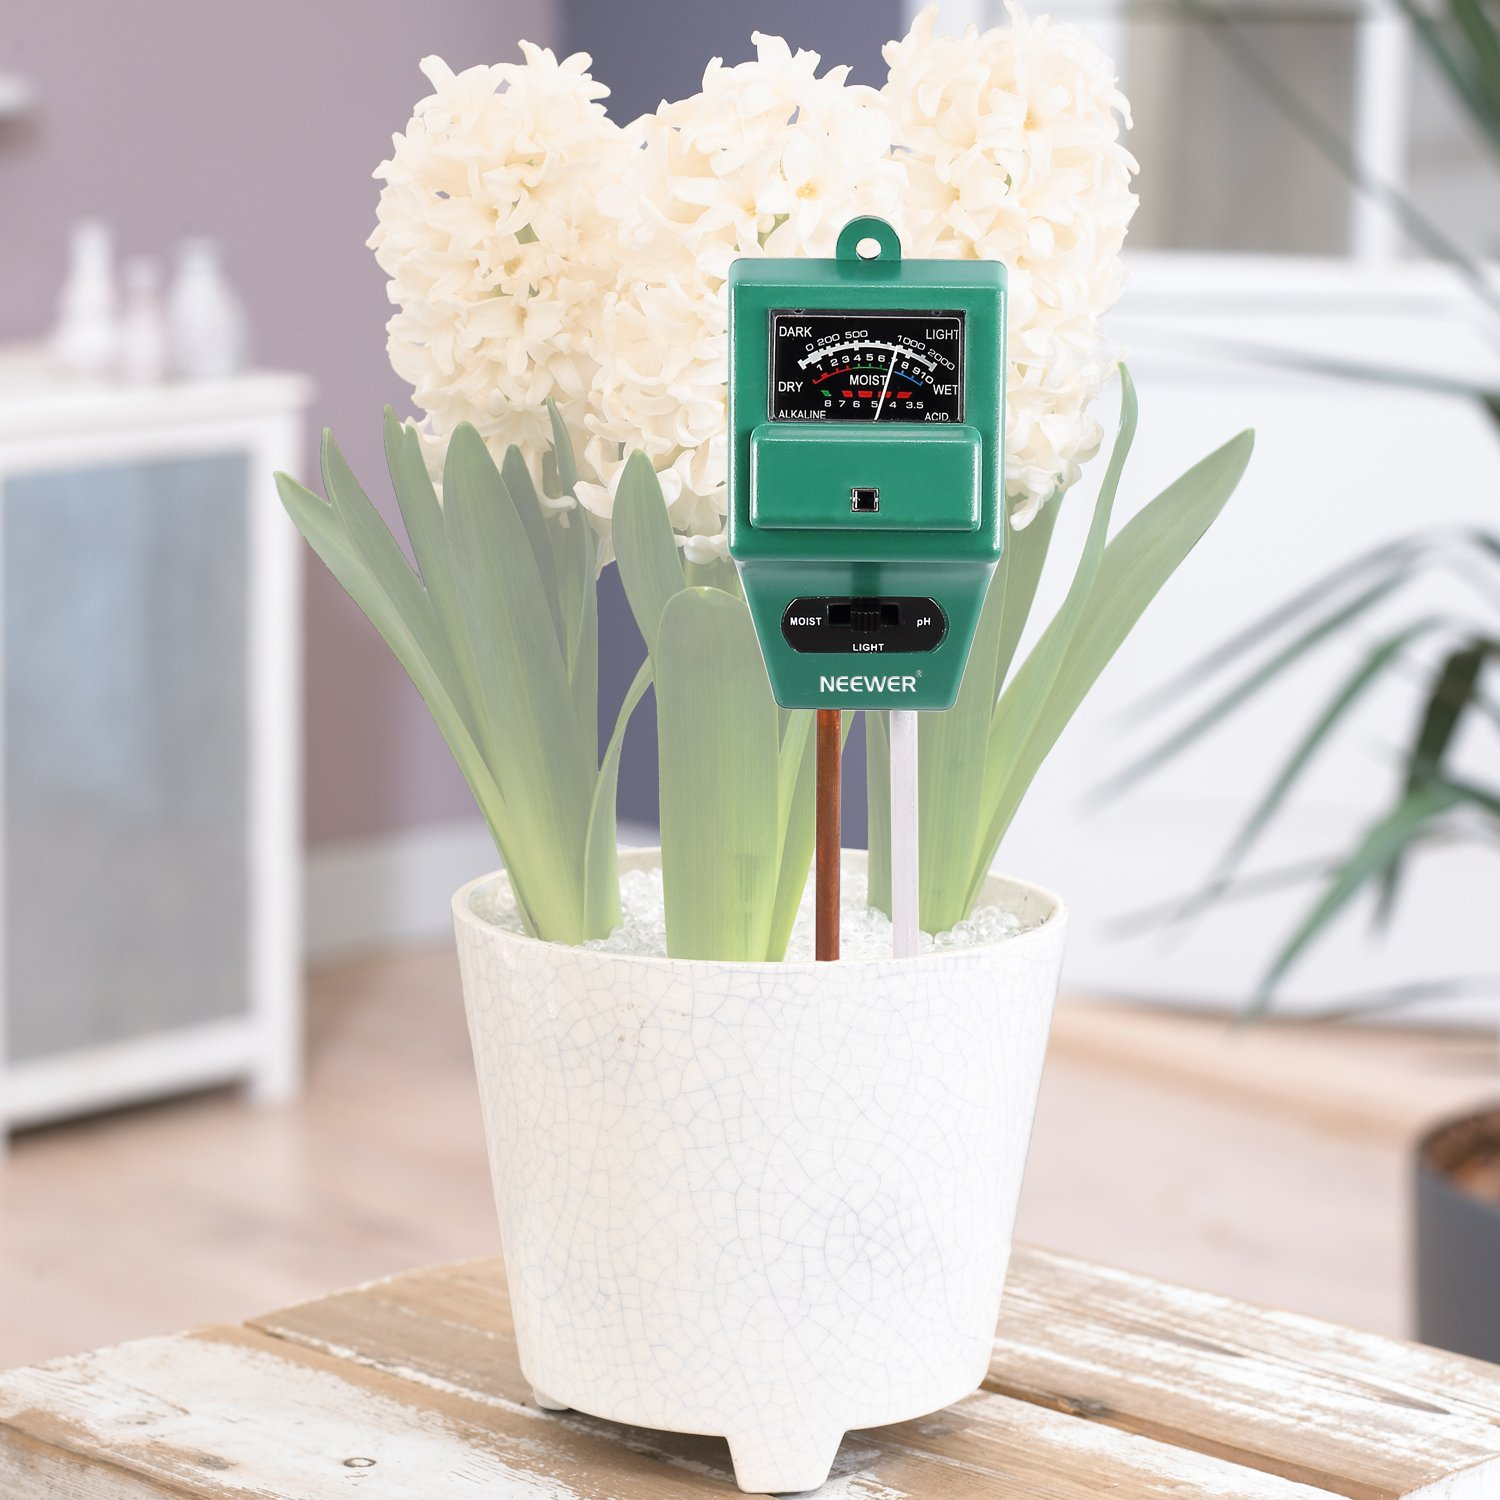 Bestdealusa Bestdealusa 3In1 Plant Flowers Soil Tester Moisture Light Ph Meter 40002011@@1